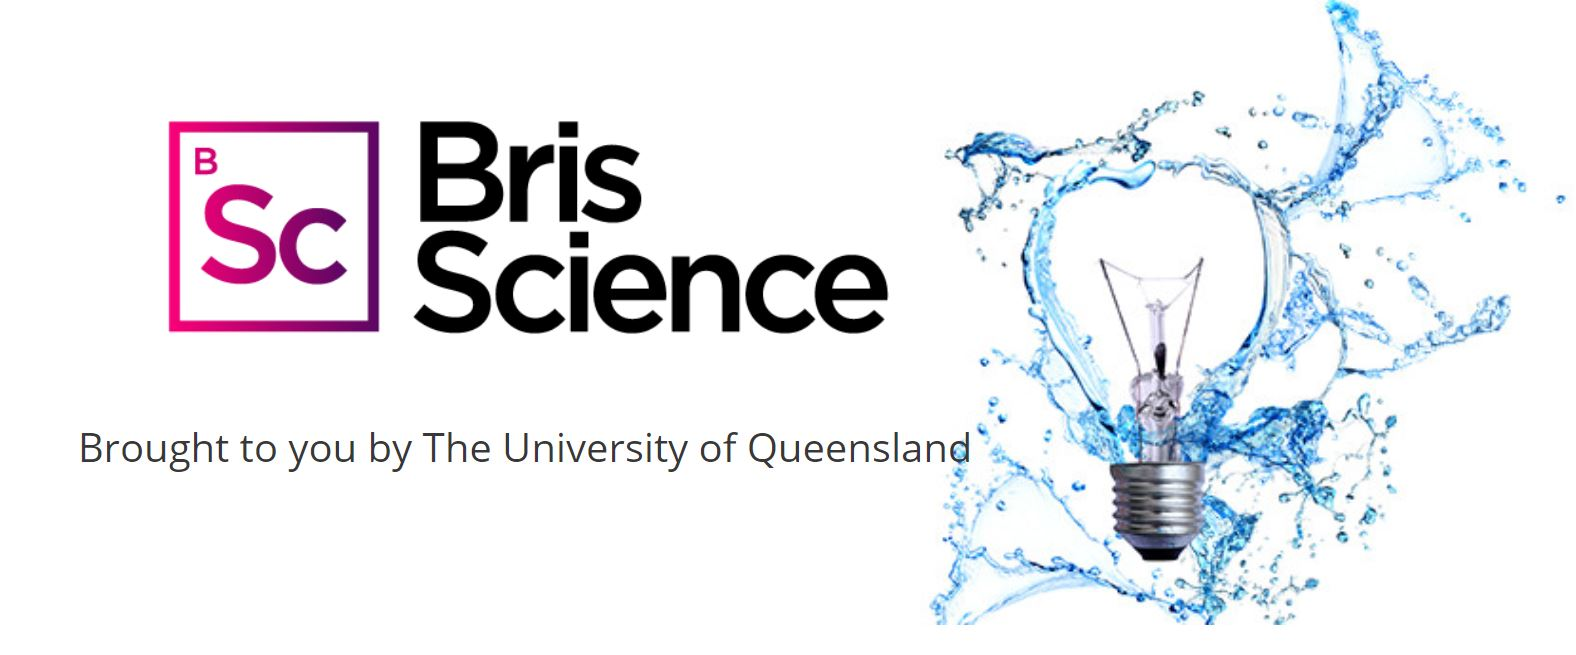 Capture_brisscience logo.JPG